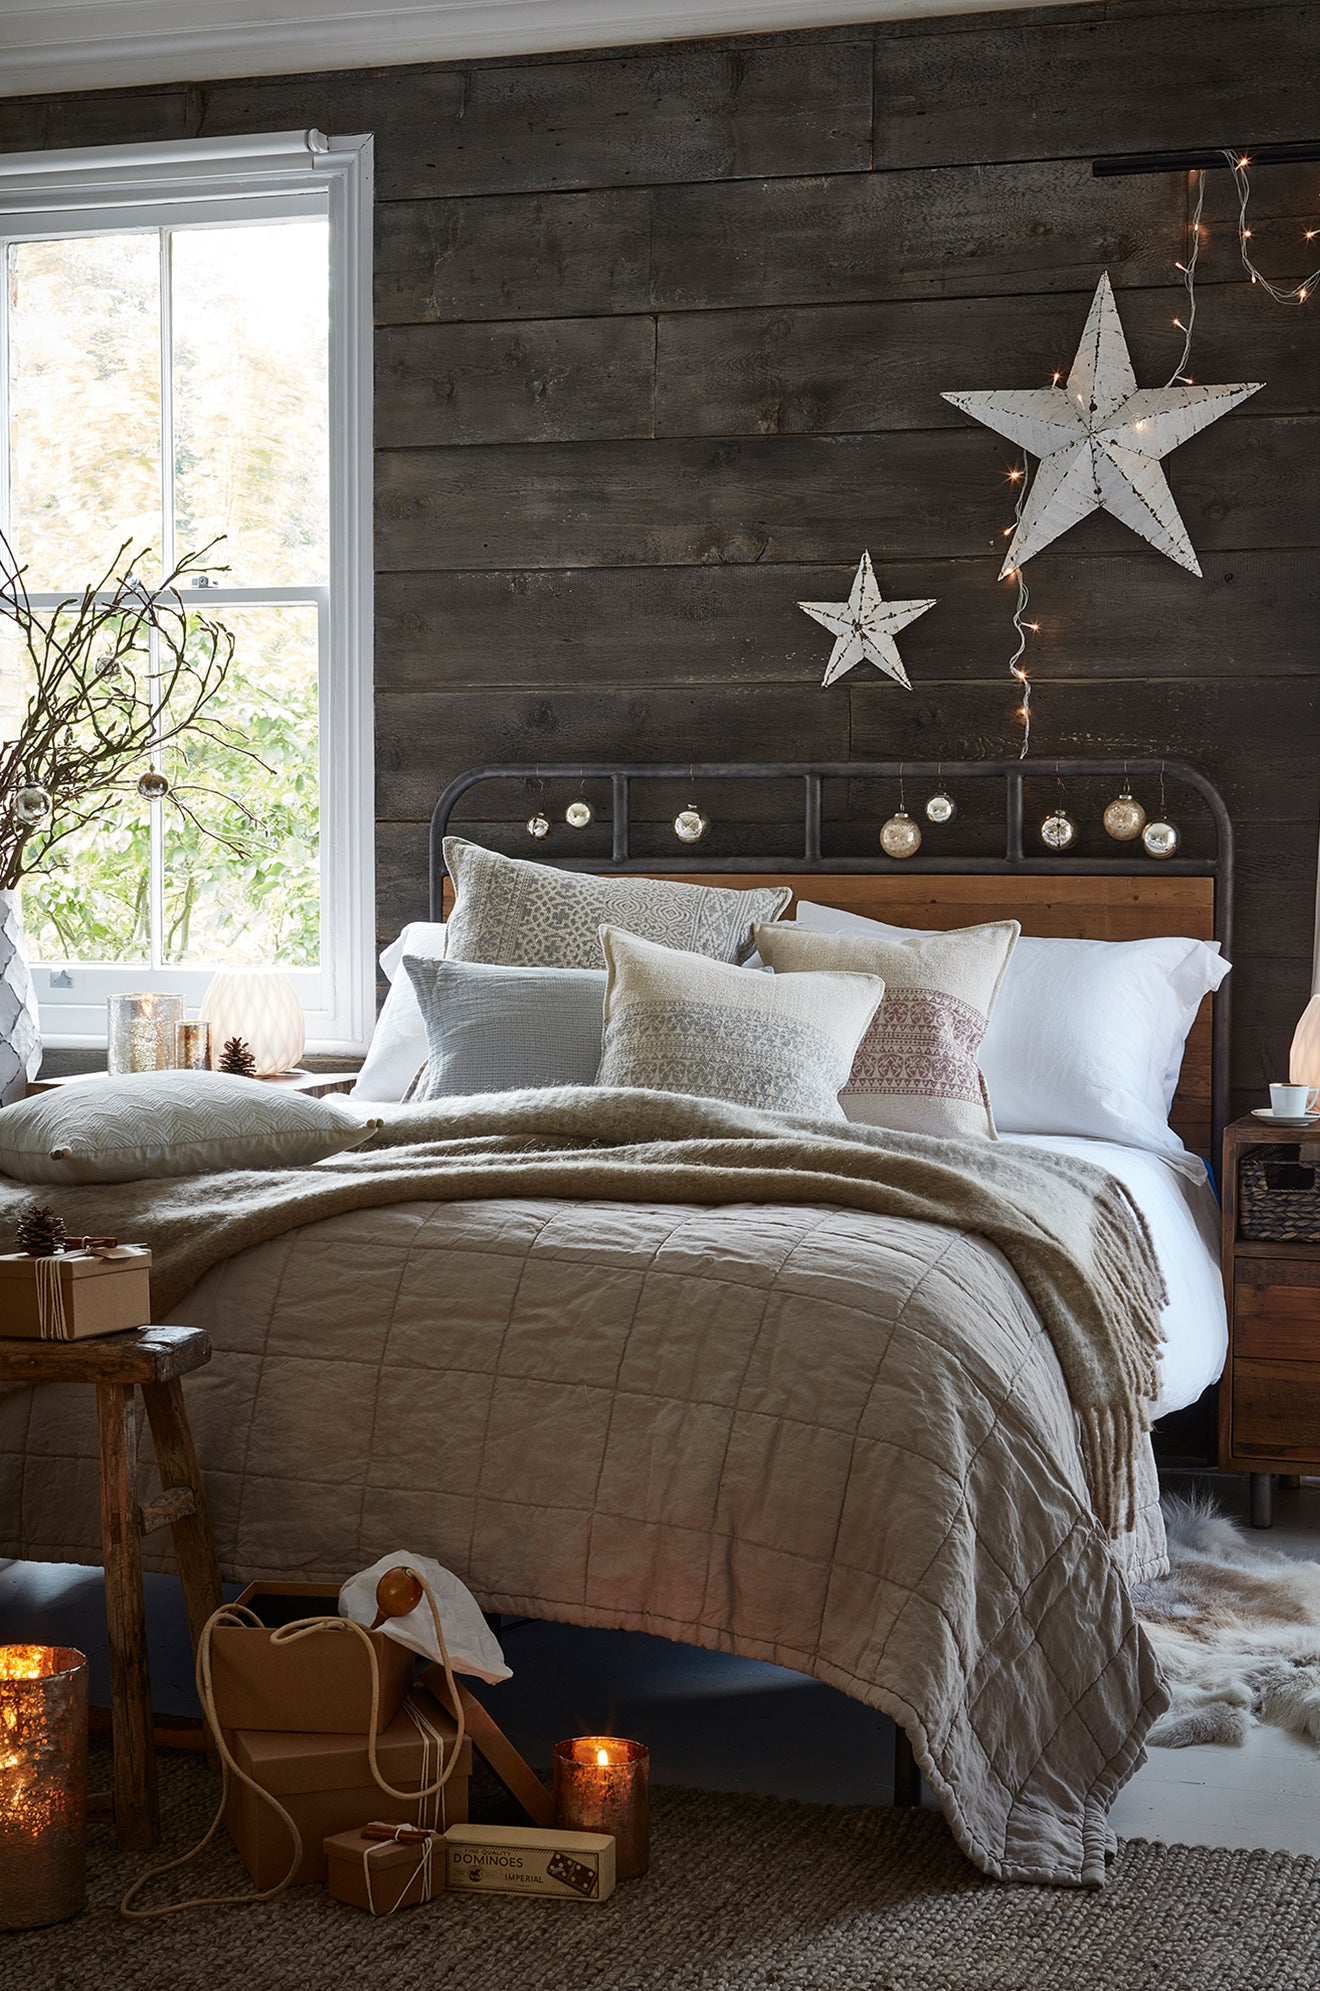 Christmas in the bedroom luxury decorative designs for the winter season from Lombok